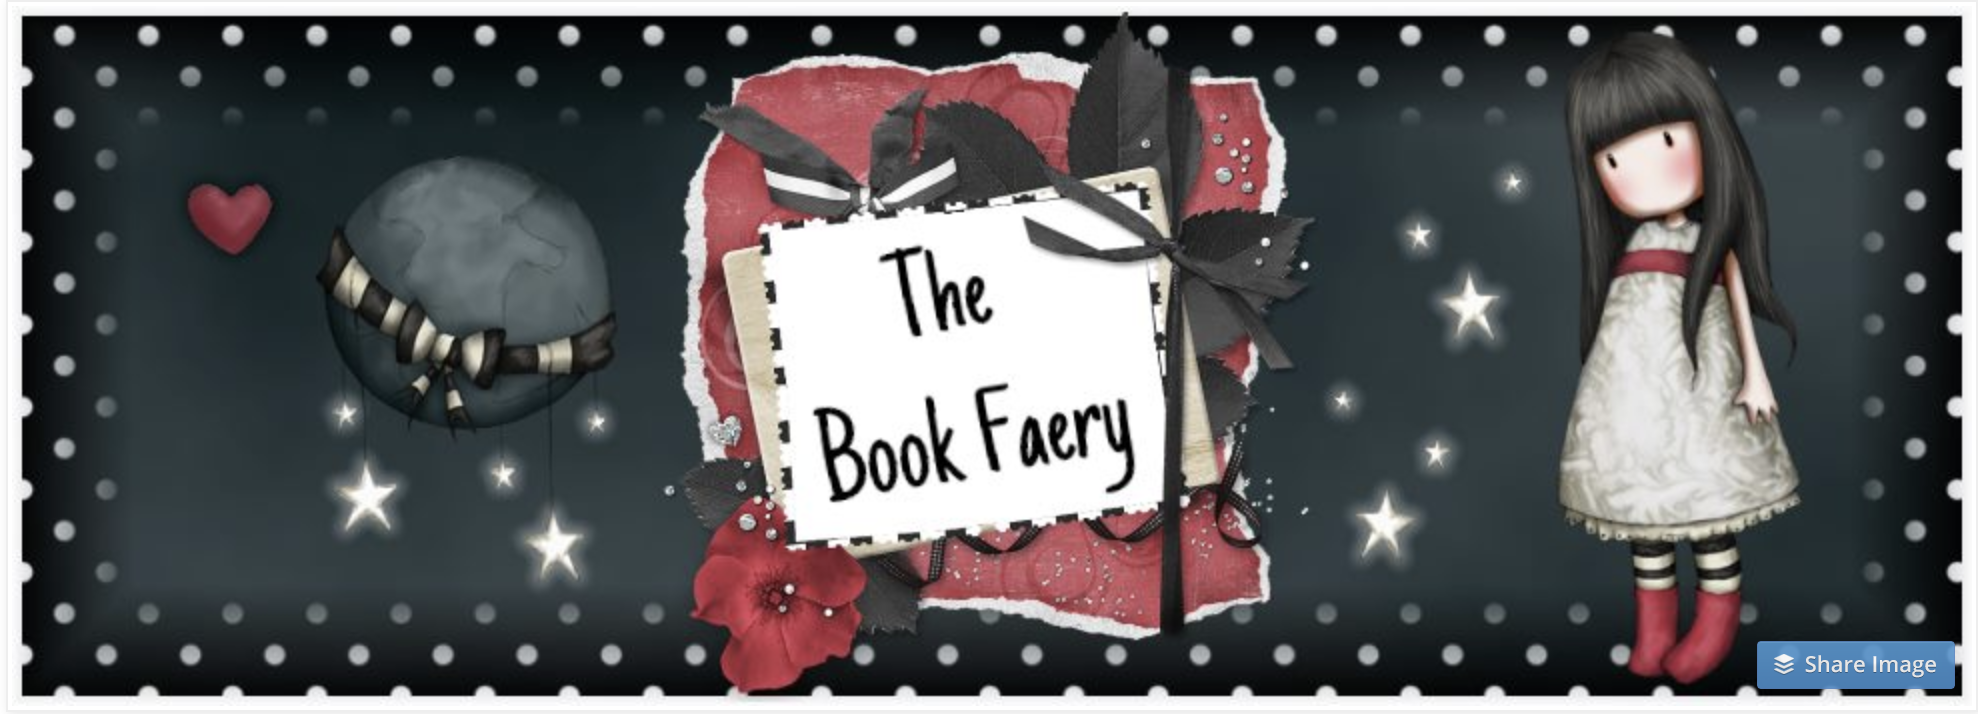 The Book Faery-Reviewer of the Written Word